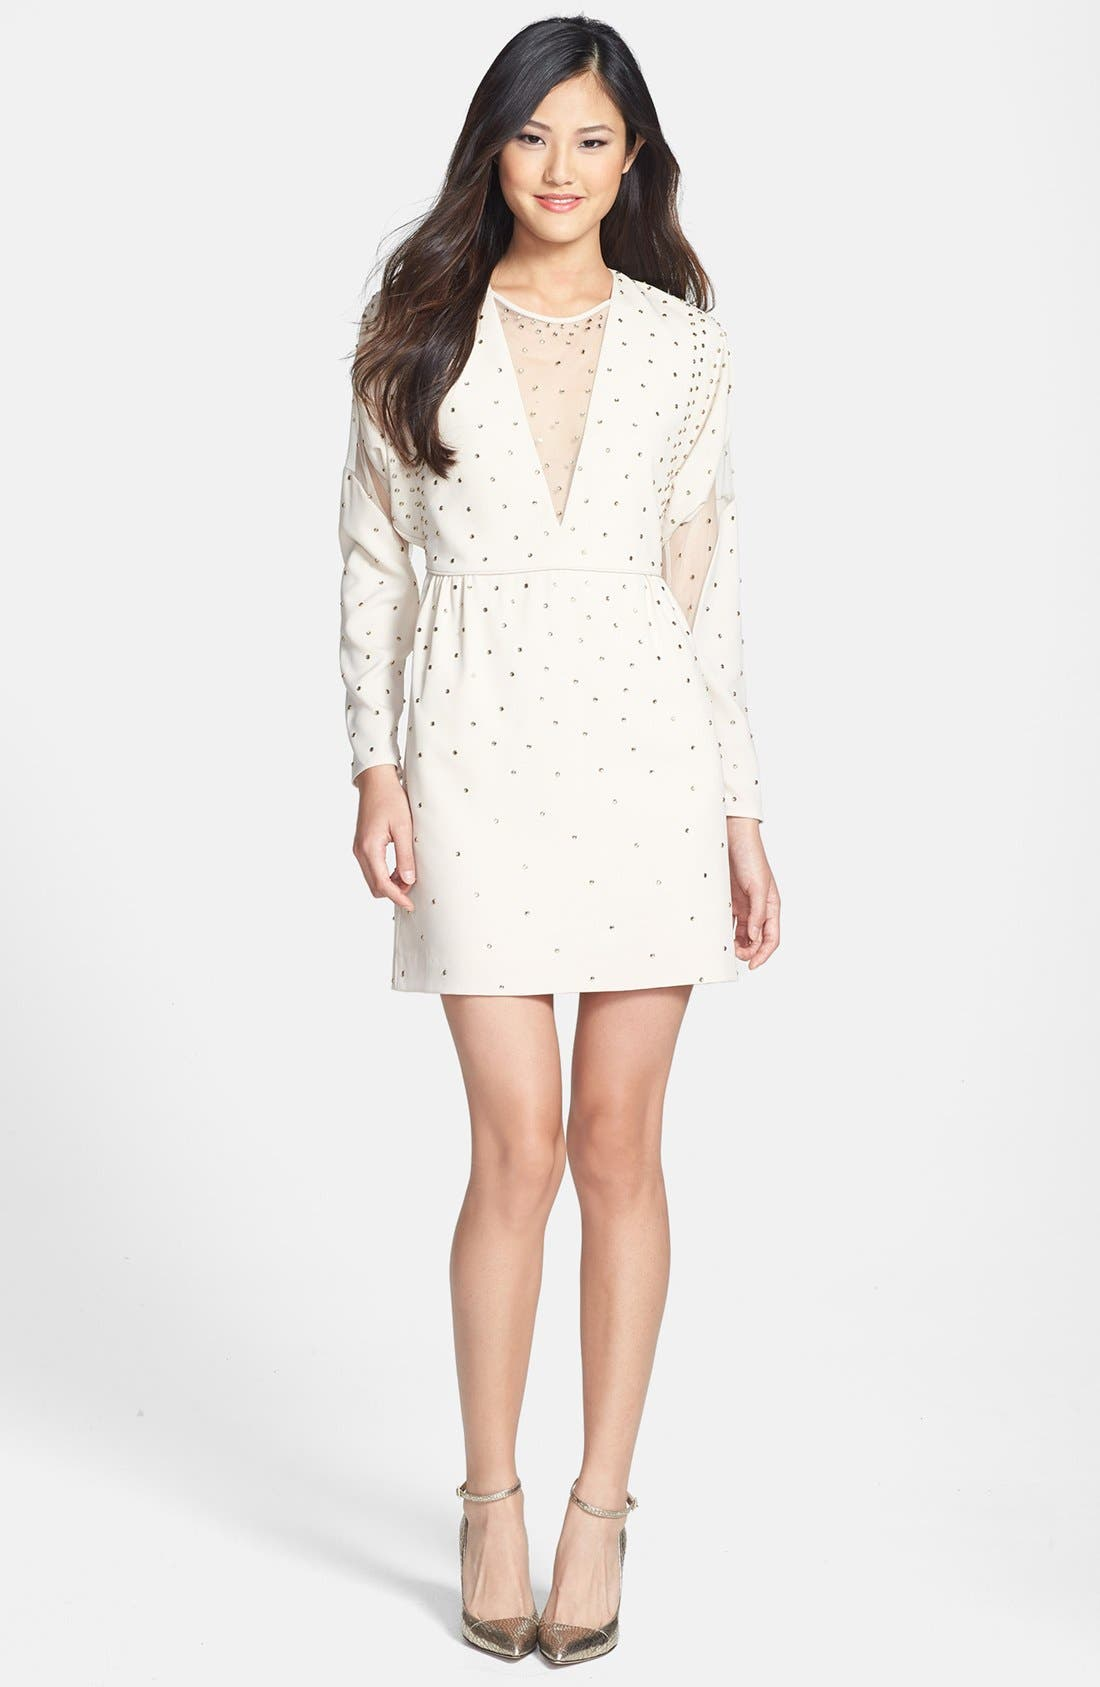 Alternate Image 1 Selected - BCBGMAXAZRIA Illusion Cutout Embellished Dress